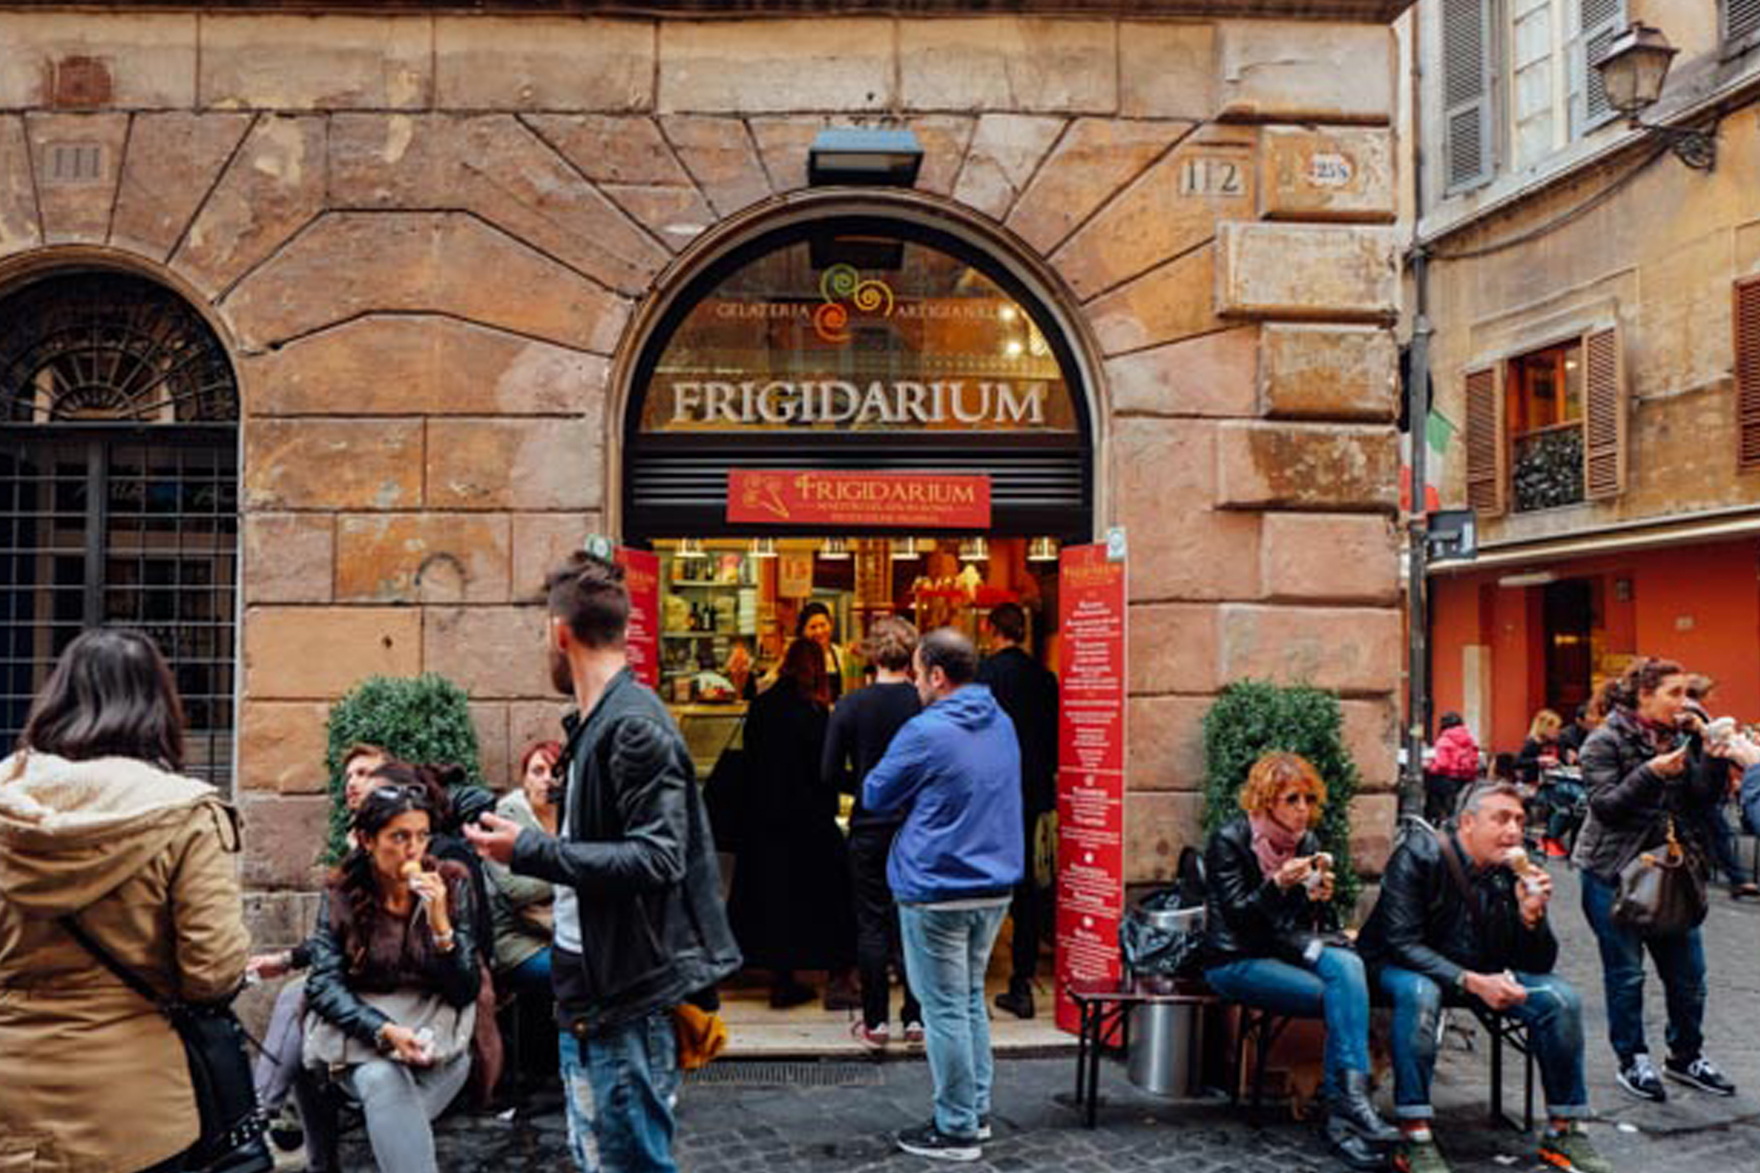 frigidarium - Amazing gelato dipped in chocolate with a cookie on top. An absolute must-visit for gelato-lovers.